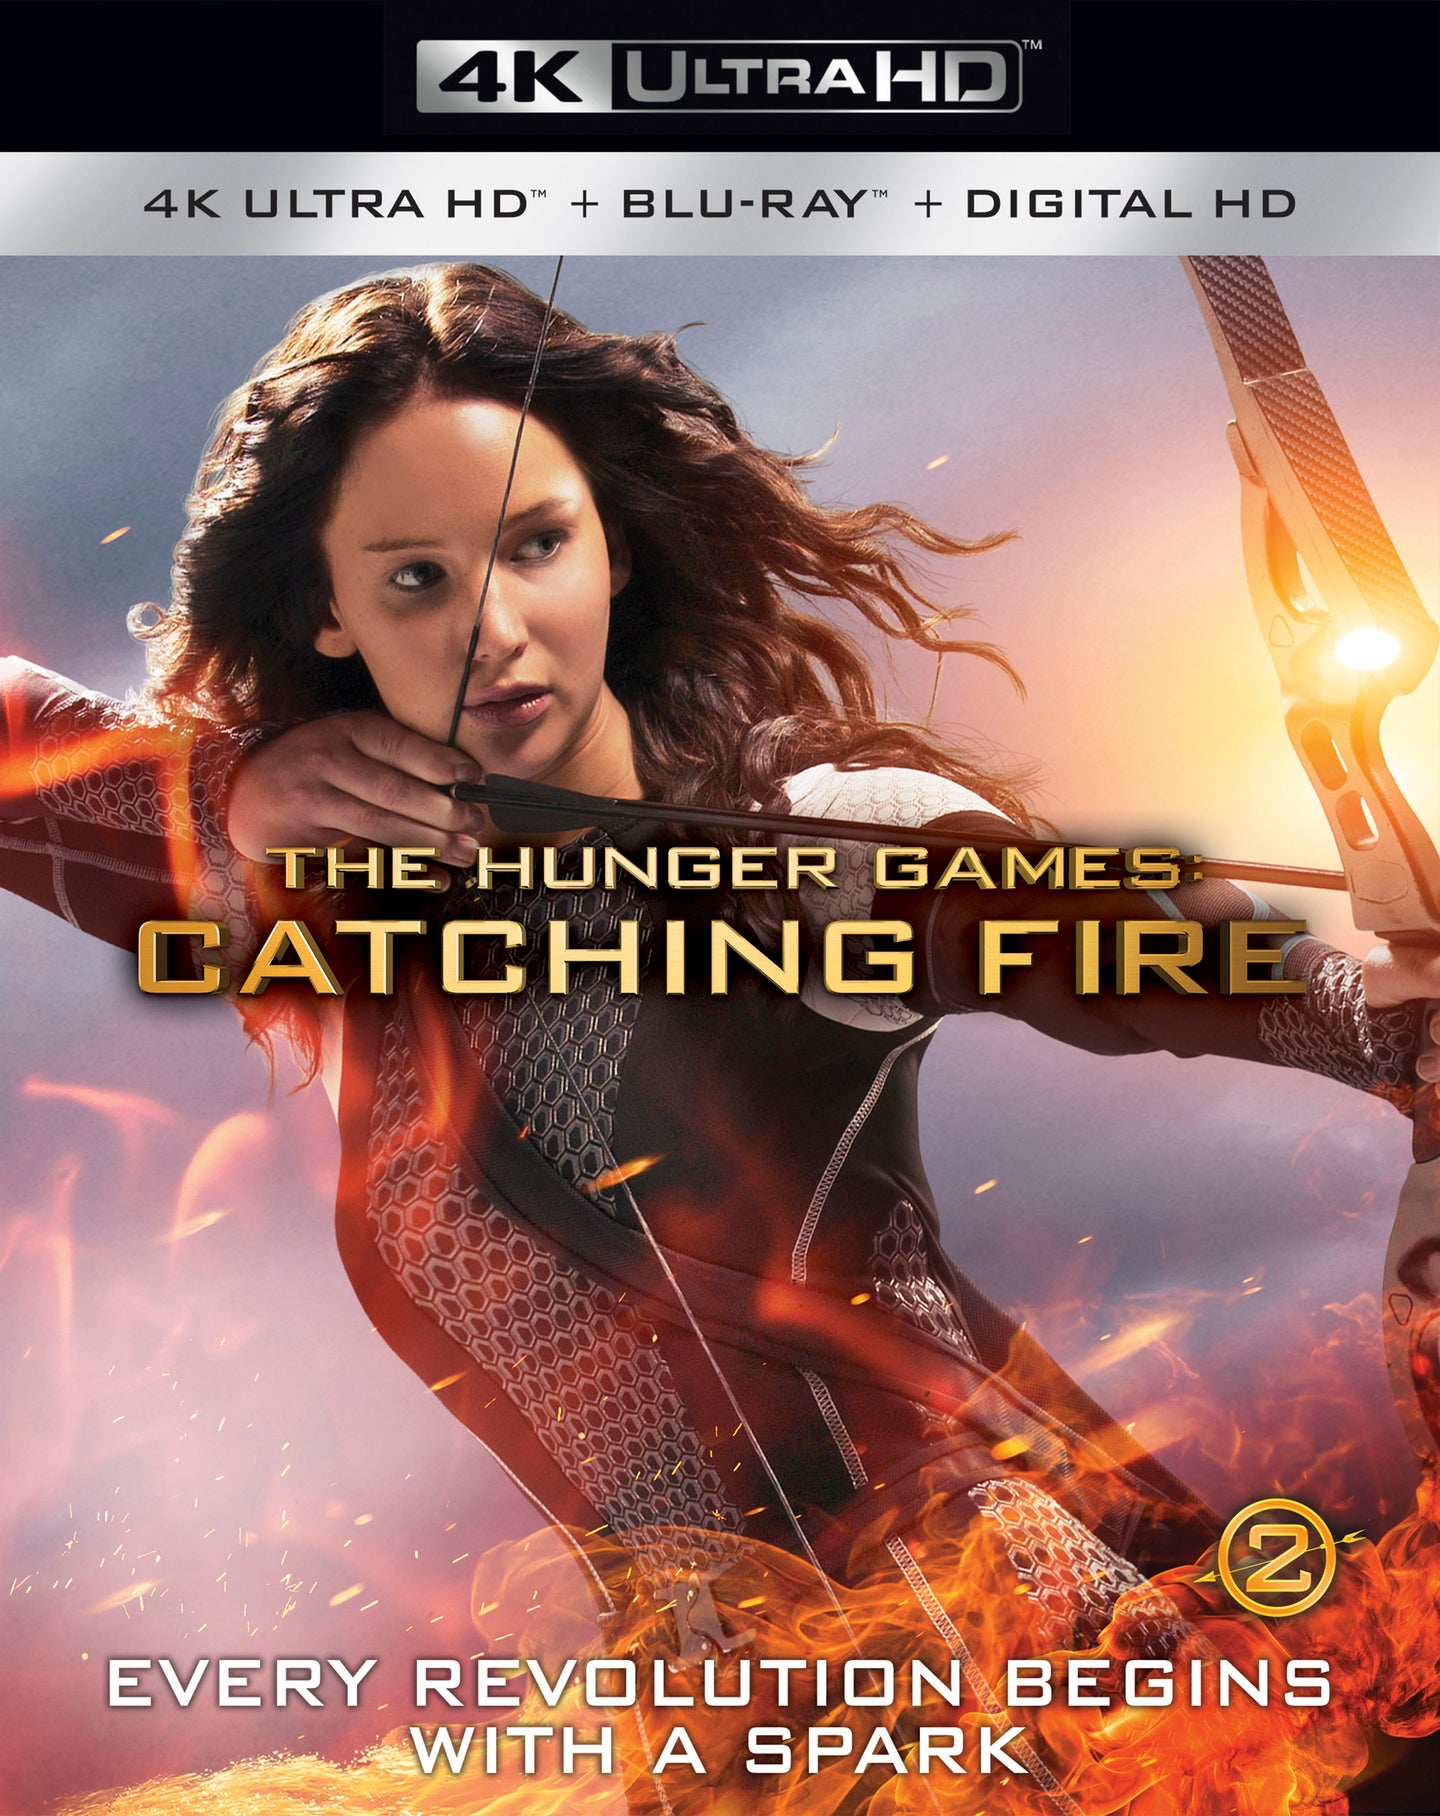 The Hunger Games: Catching Fire (2013) Vudu 4K redemption only